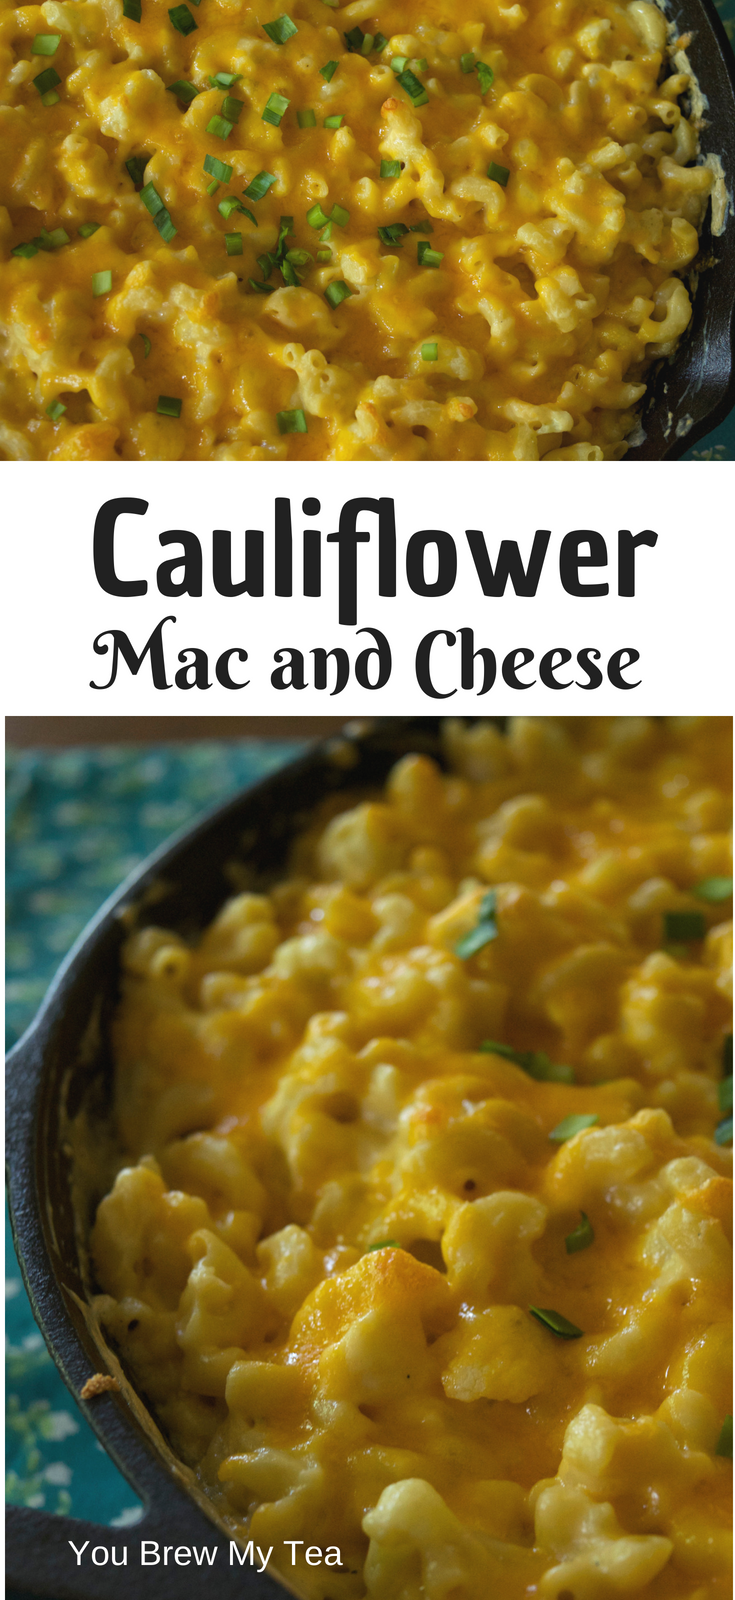 Make our delicious Roasted Cauliflower Mac and Cheese as a diabetic friendly Weight Watchers recipe that is only 7 SmartPoints on FreeStyle for a large serving! A delicious kid-friendly side dish!